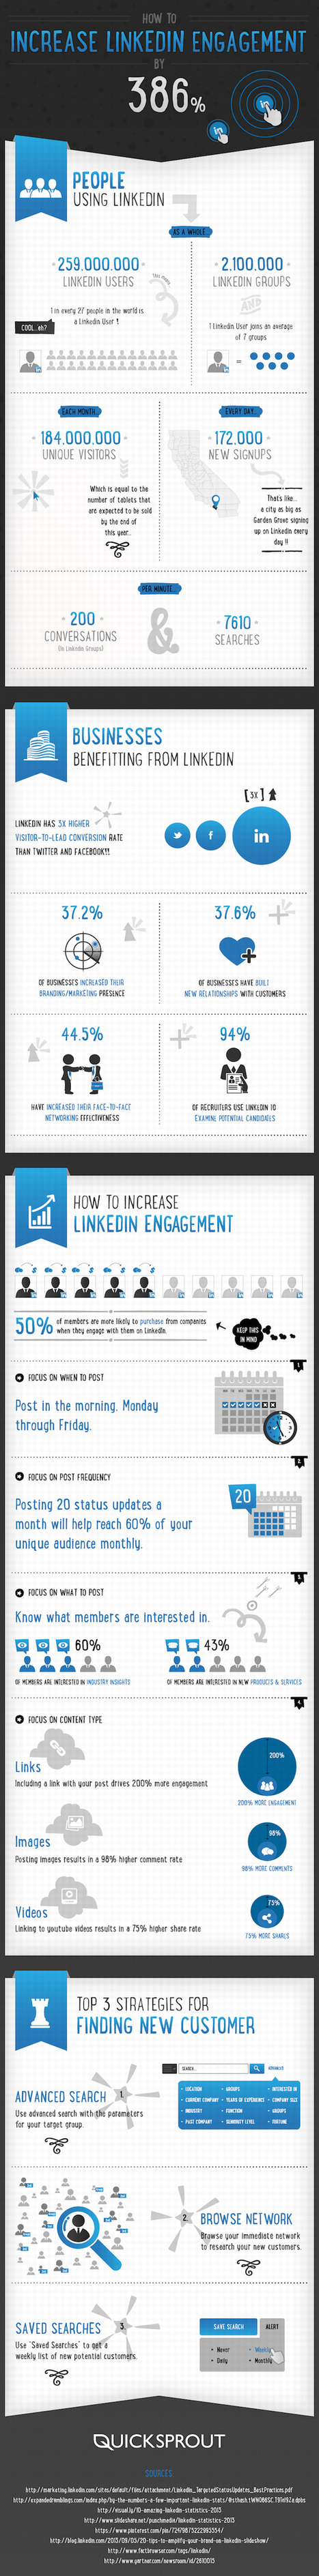 How To Increase LinkedIn Engagement By 386% (Infographic) | Following the path of LinkedIn | Scoop.it